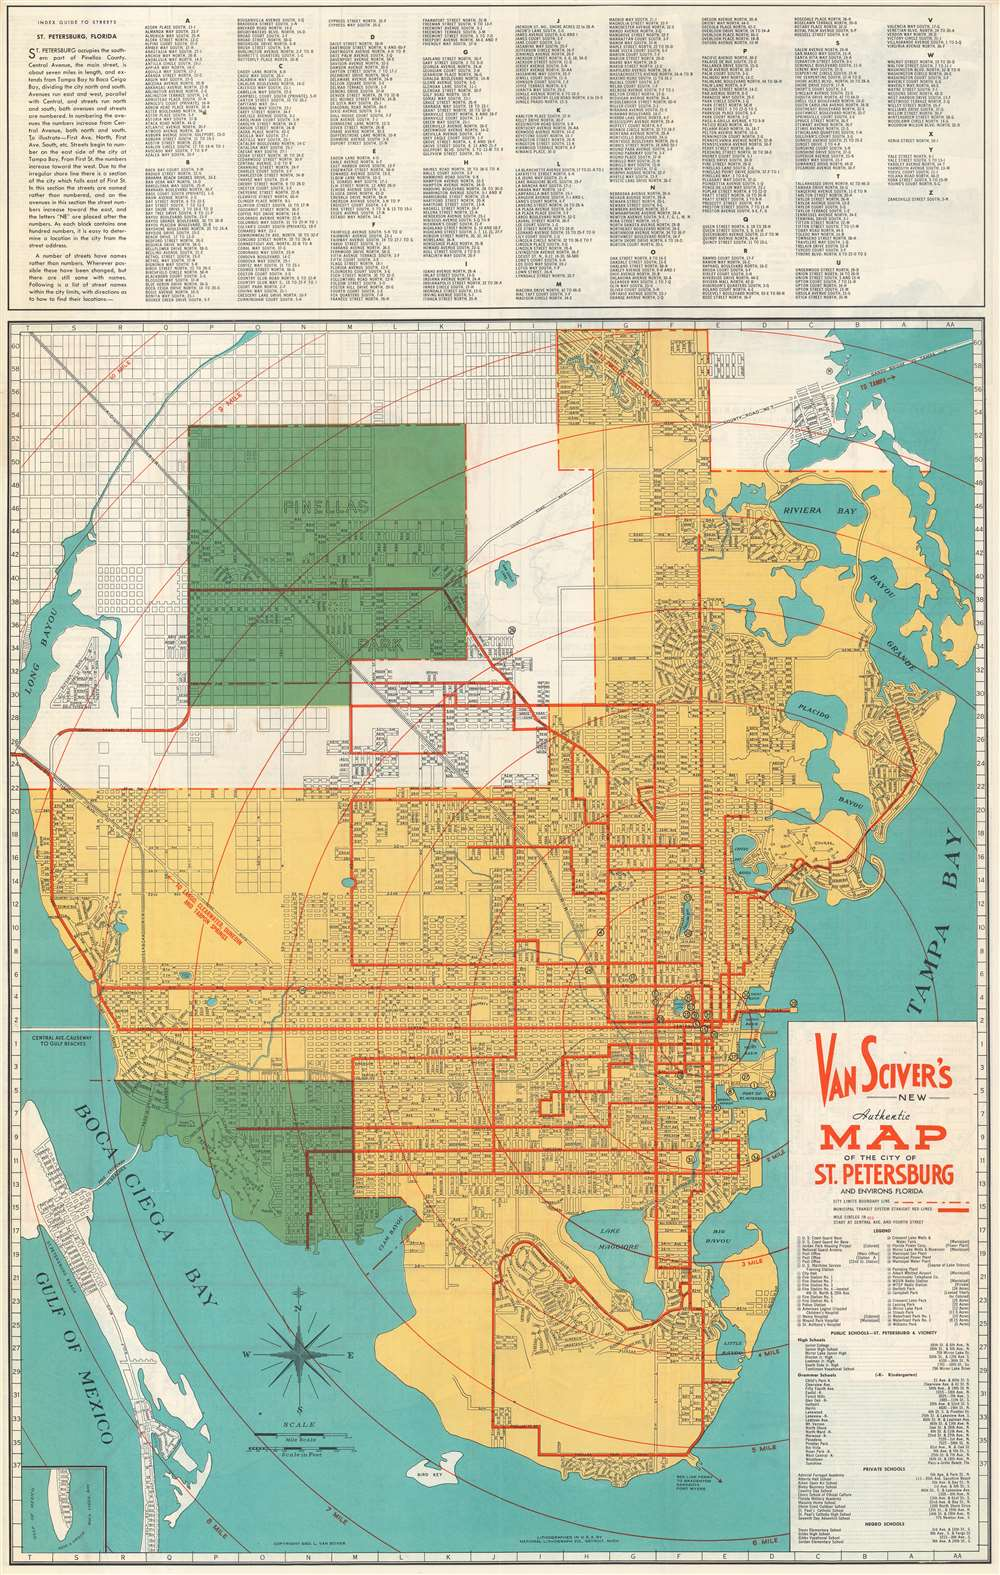 saint petersburg florida map Van Sciver S New Authentic Map Of The City Of St Petersburg And